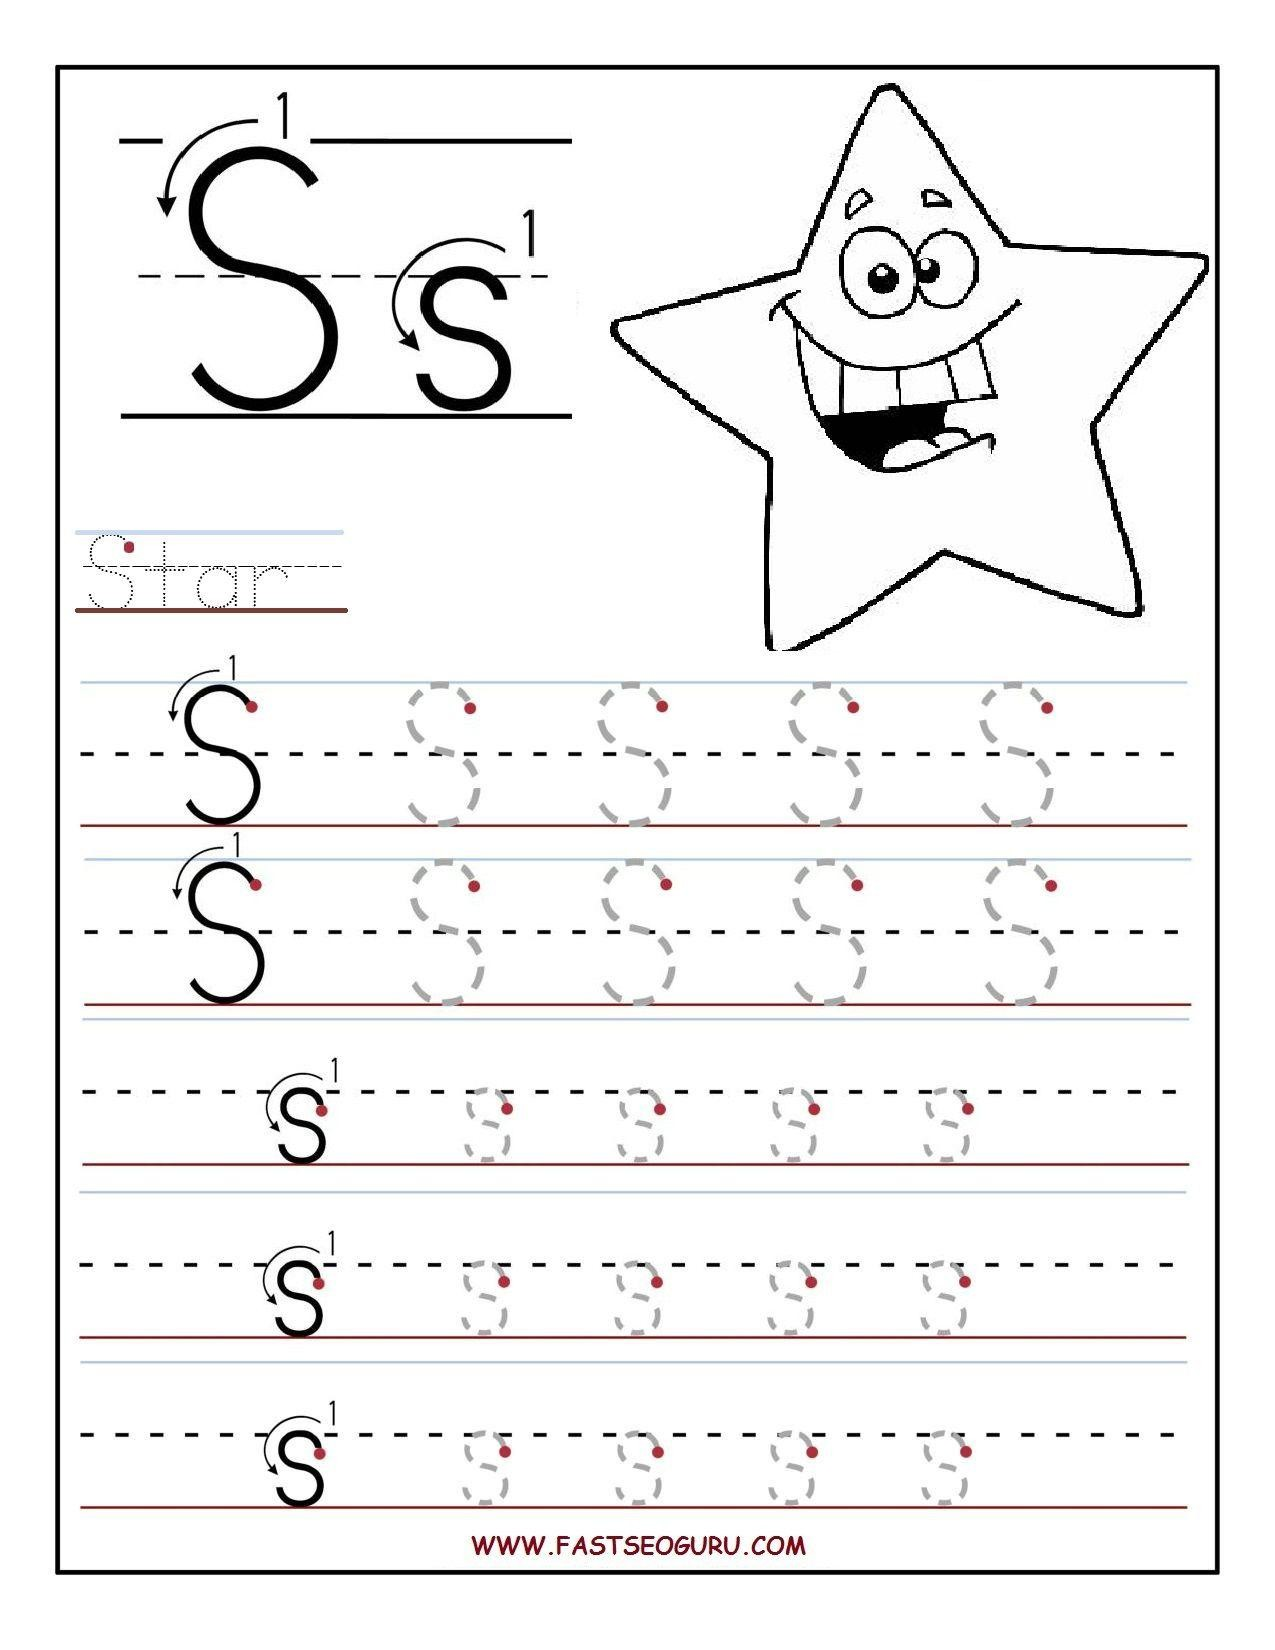 Learn To Write Abc Worksheet 7 Letter Worksheets